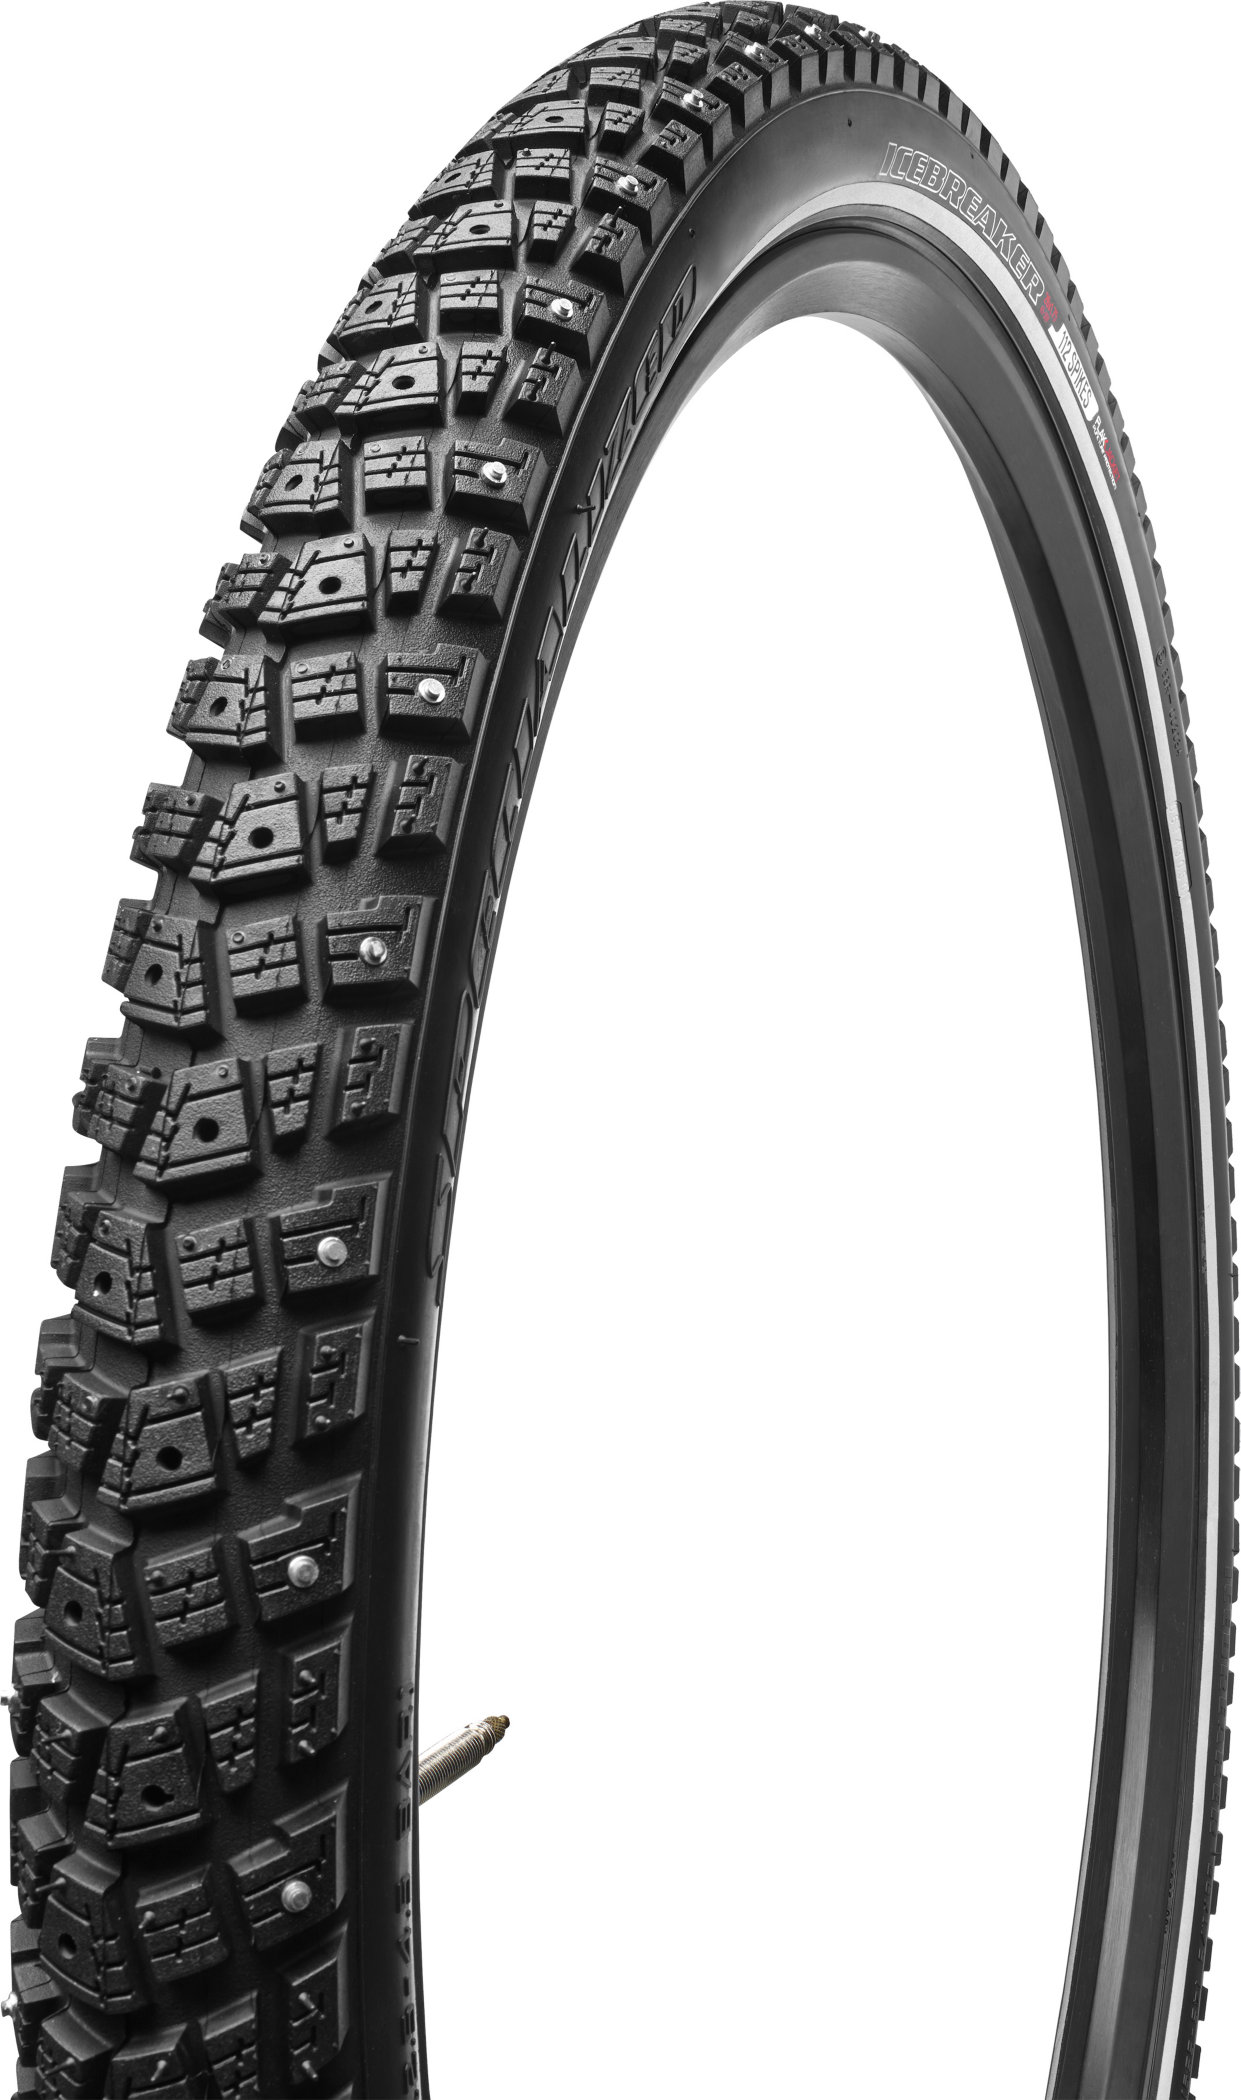 SPECIALIZED ICEBREAKER 138 PARTIAL STUD REFLECT TIRE 700X38C - Alpha Bikes